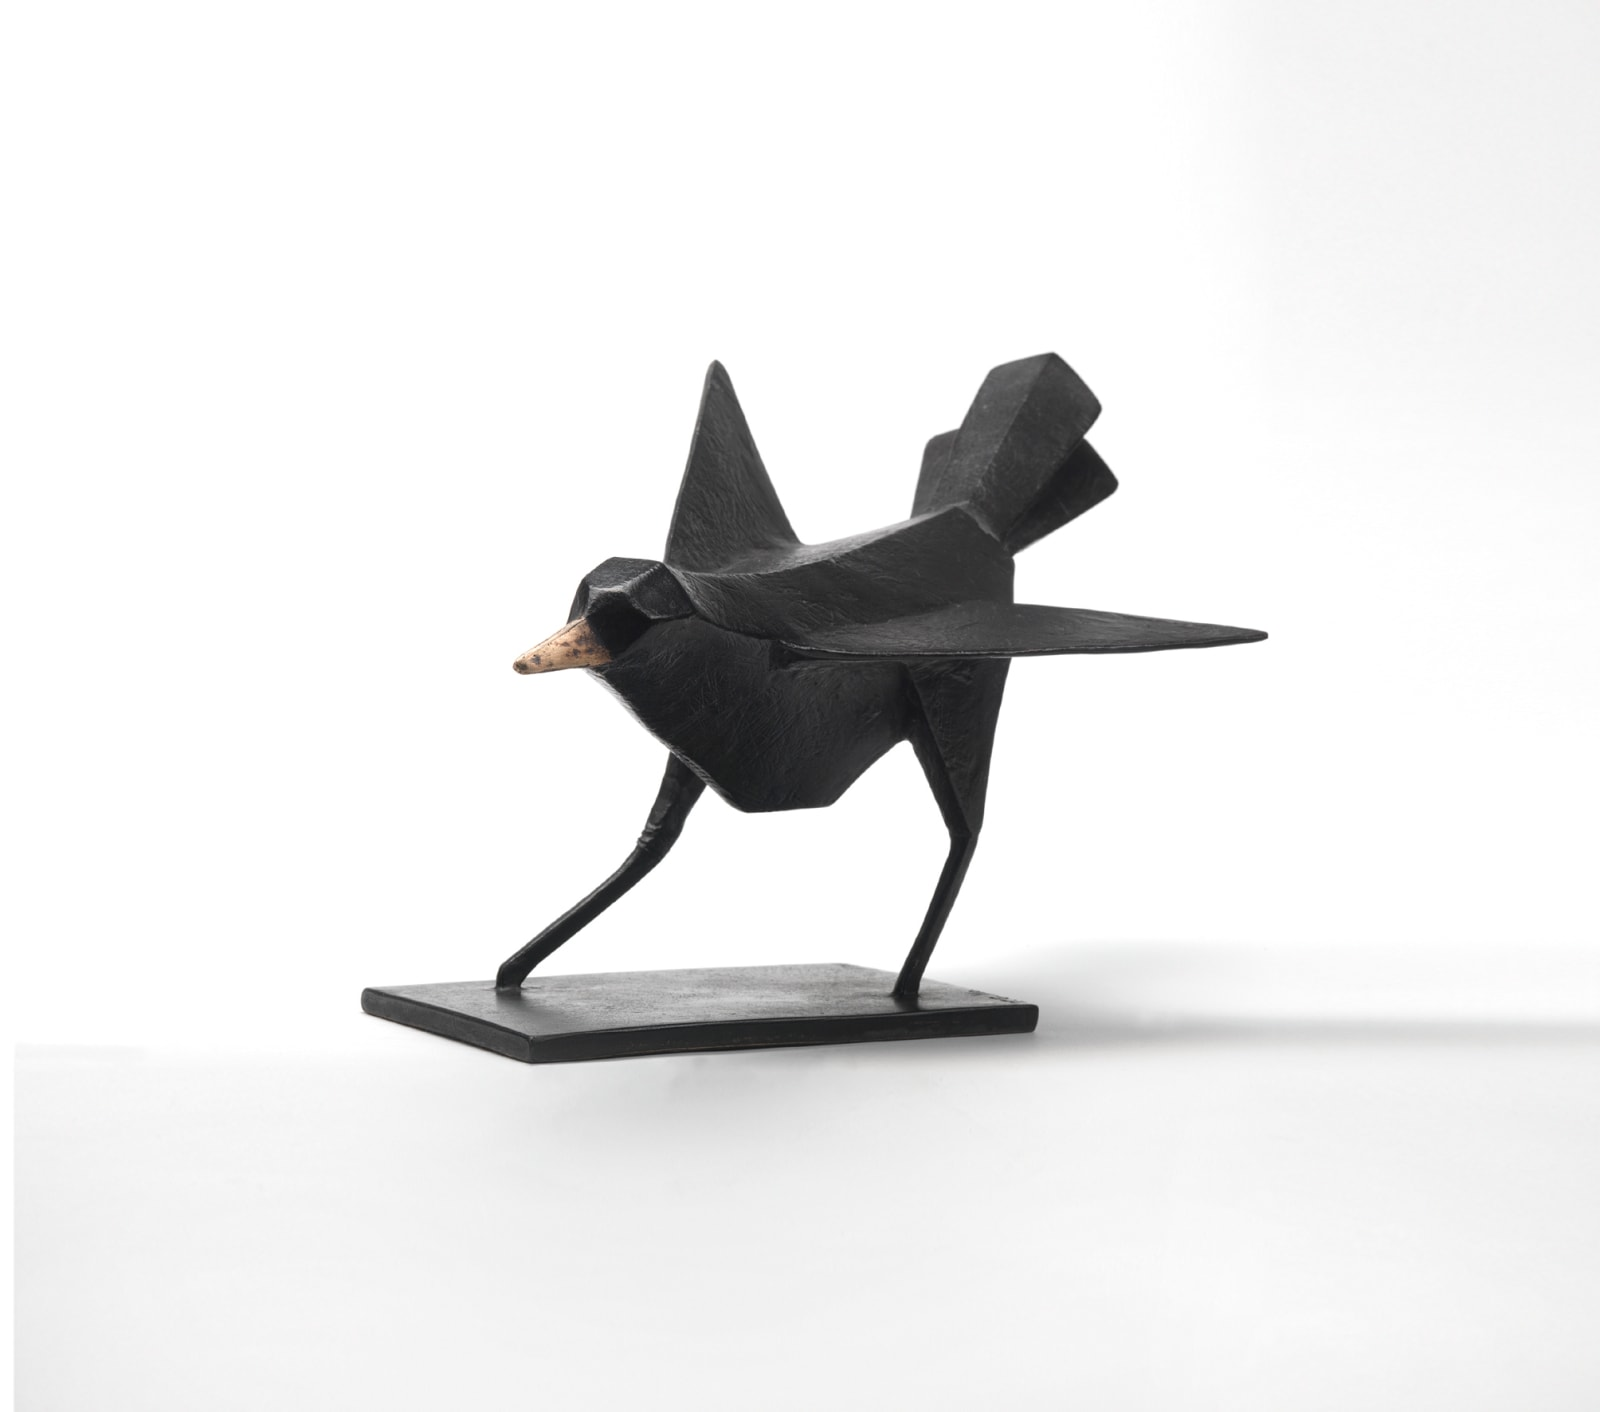 Terence Coventry, Listening Blackbird, 2009